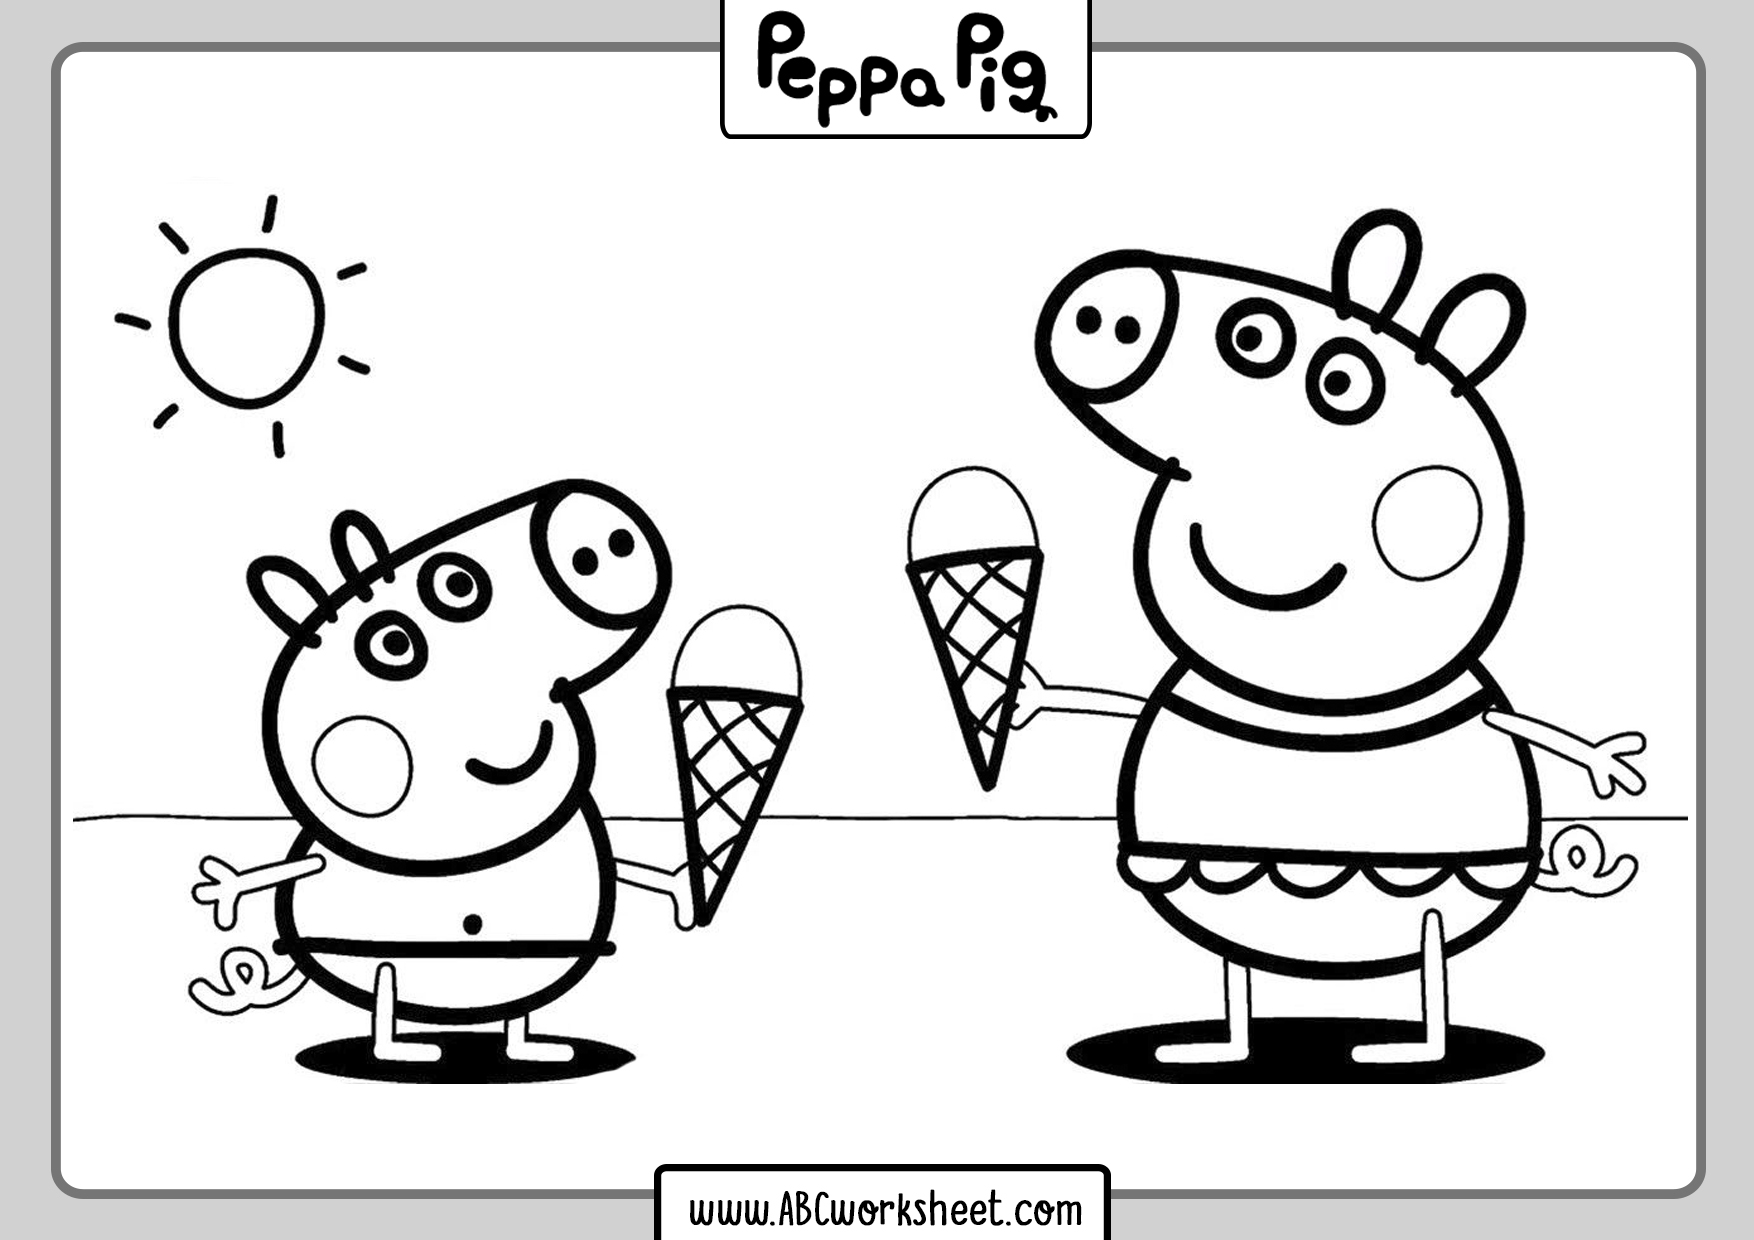 Peppa Pig Drawings For Coloring